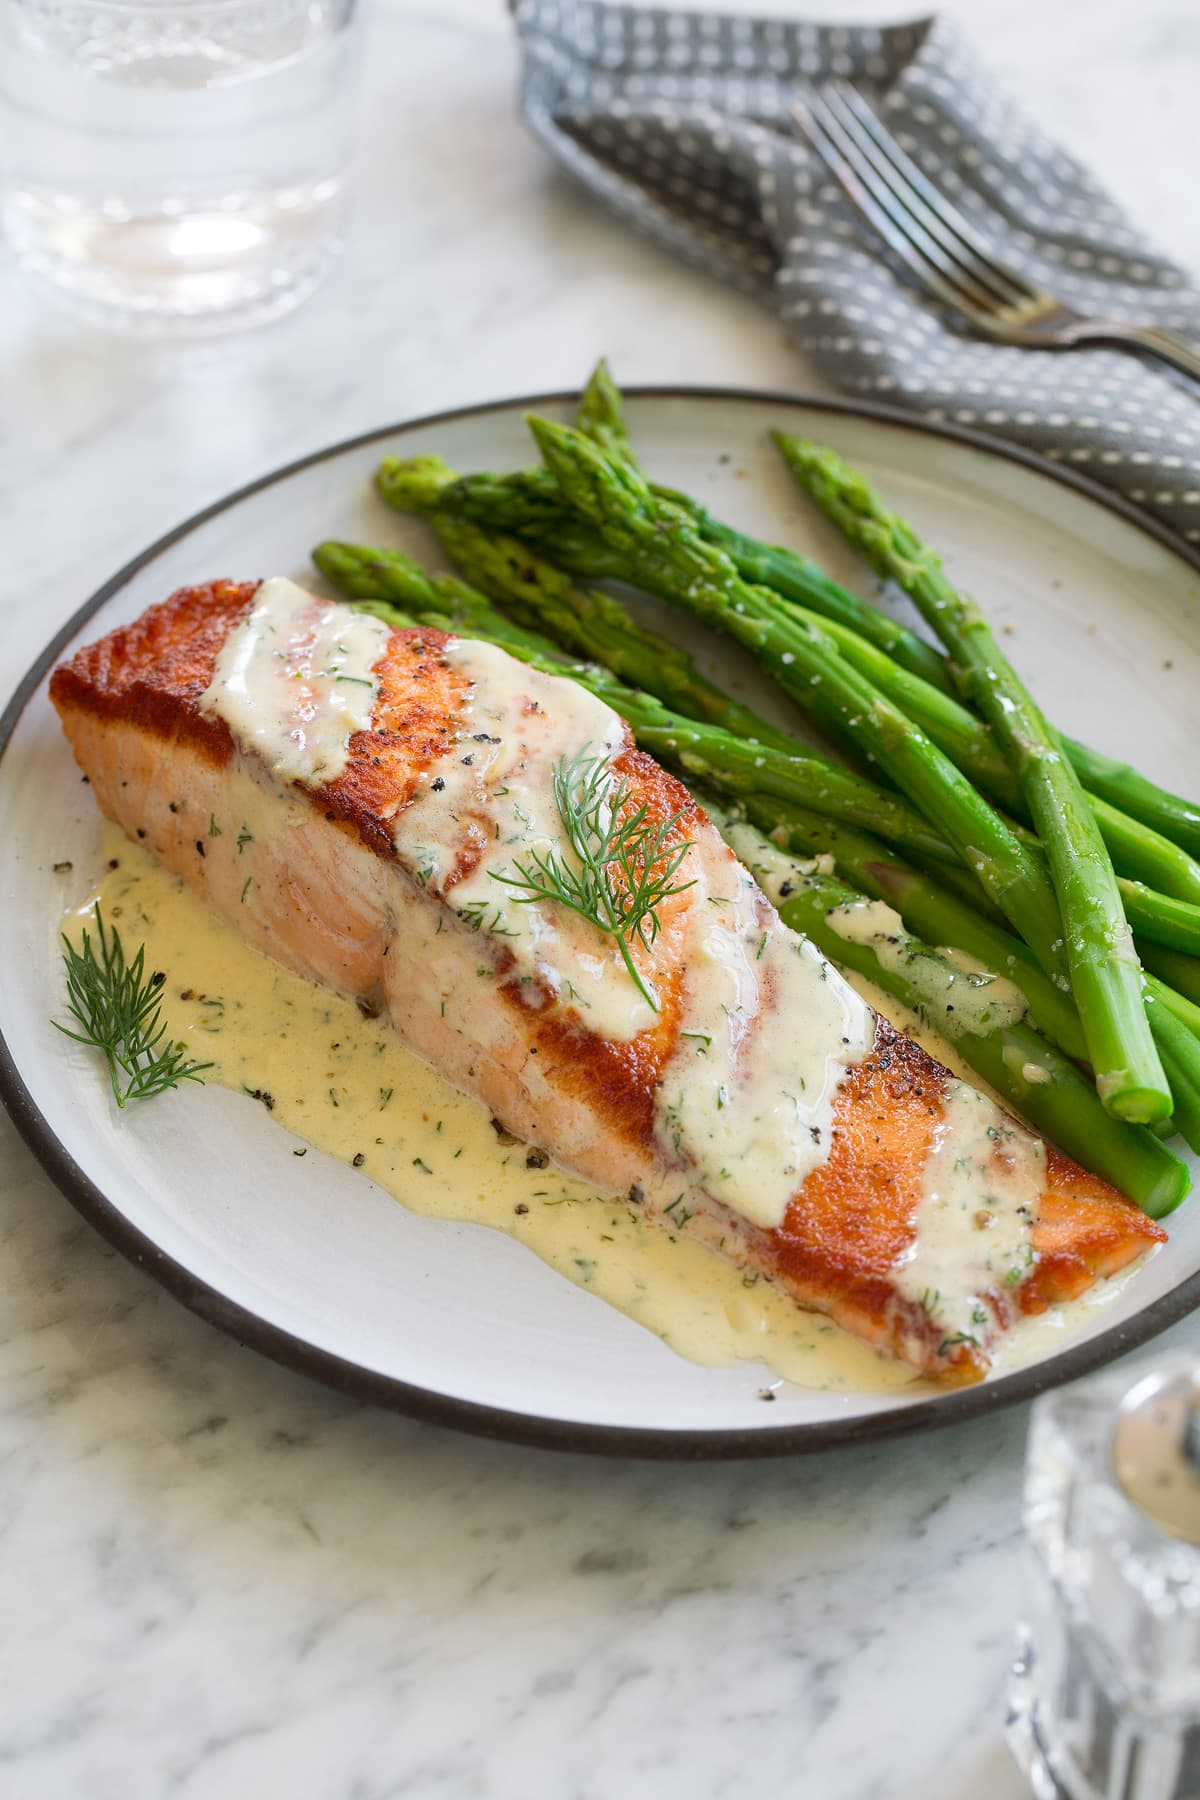 Salmon fillet on a white plate set over a marble surface. Topped with dijon sauce and served with a side of asparagus.